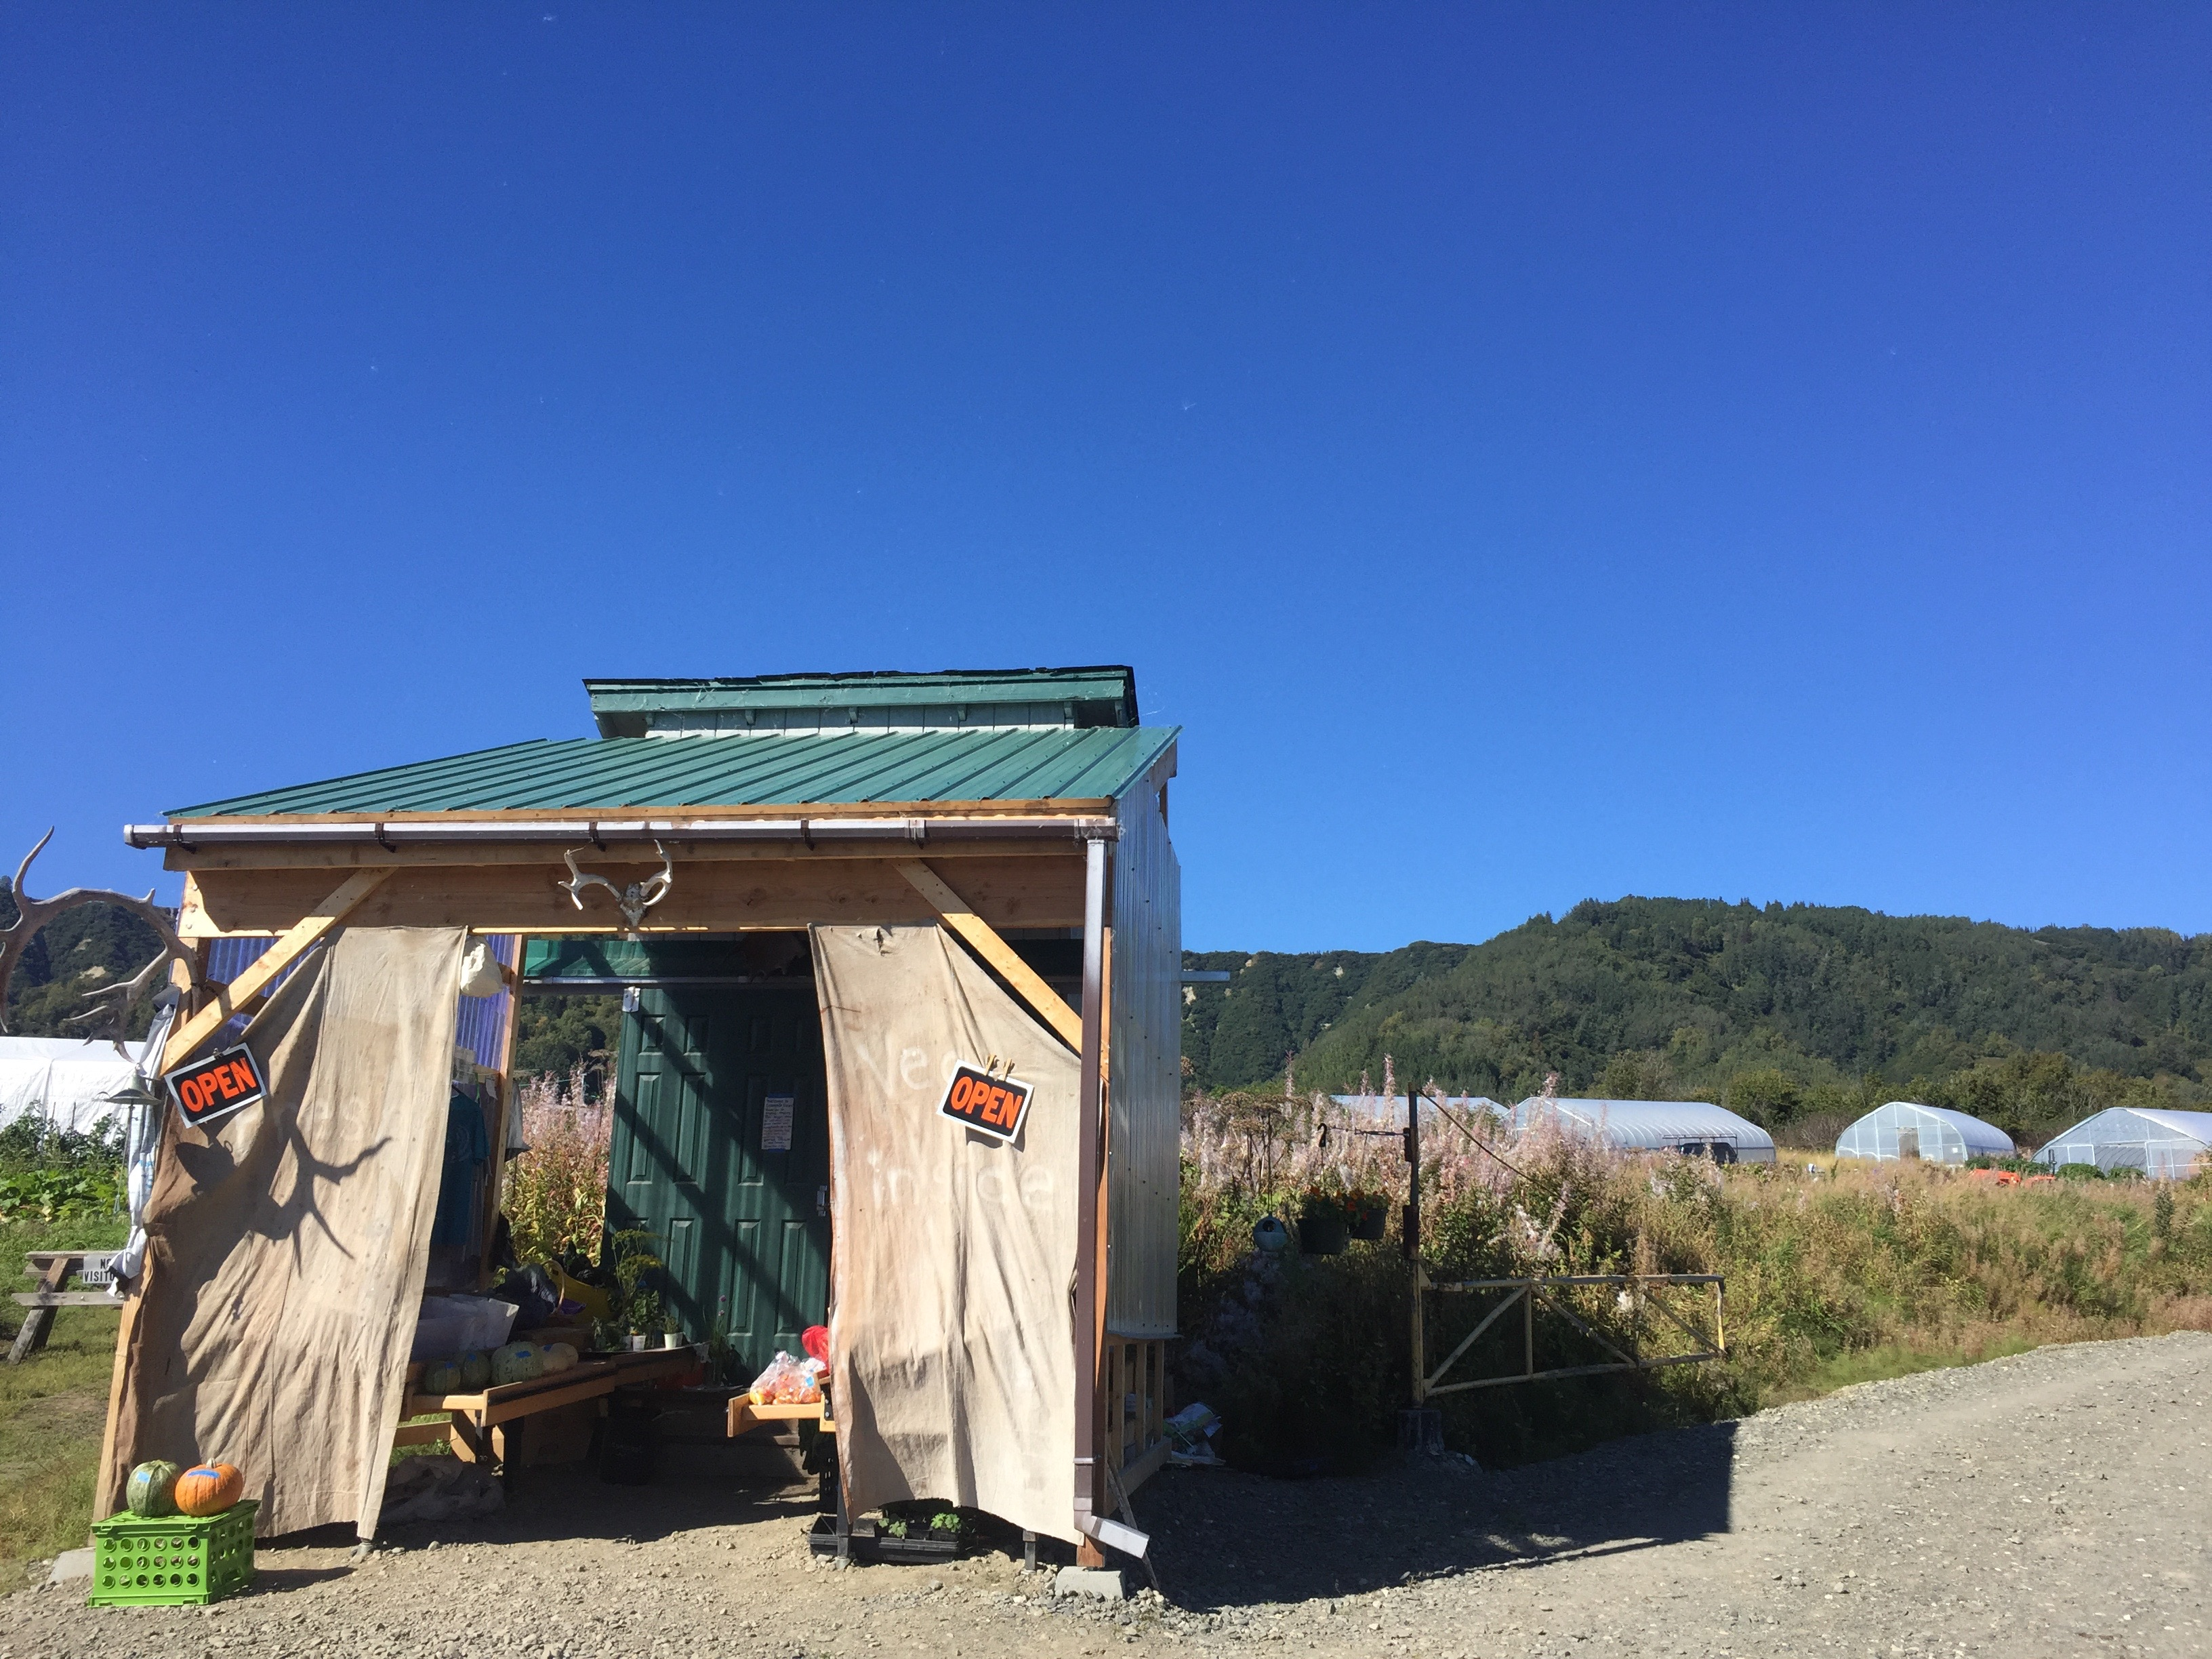 Homer area residents can stop into the roadside farm stand to pick up tomatoes, herbs, squash and many other kinds of fruits and vegetables grown on site at Oceanside Farms. (Photo by Emily Scwing, Northwest News Network)